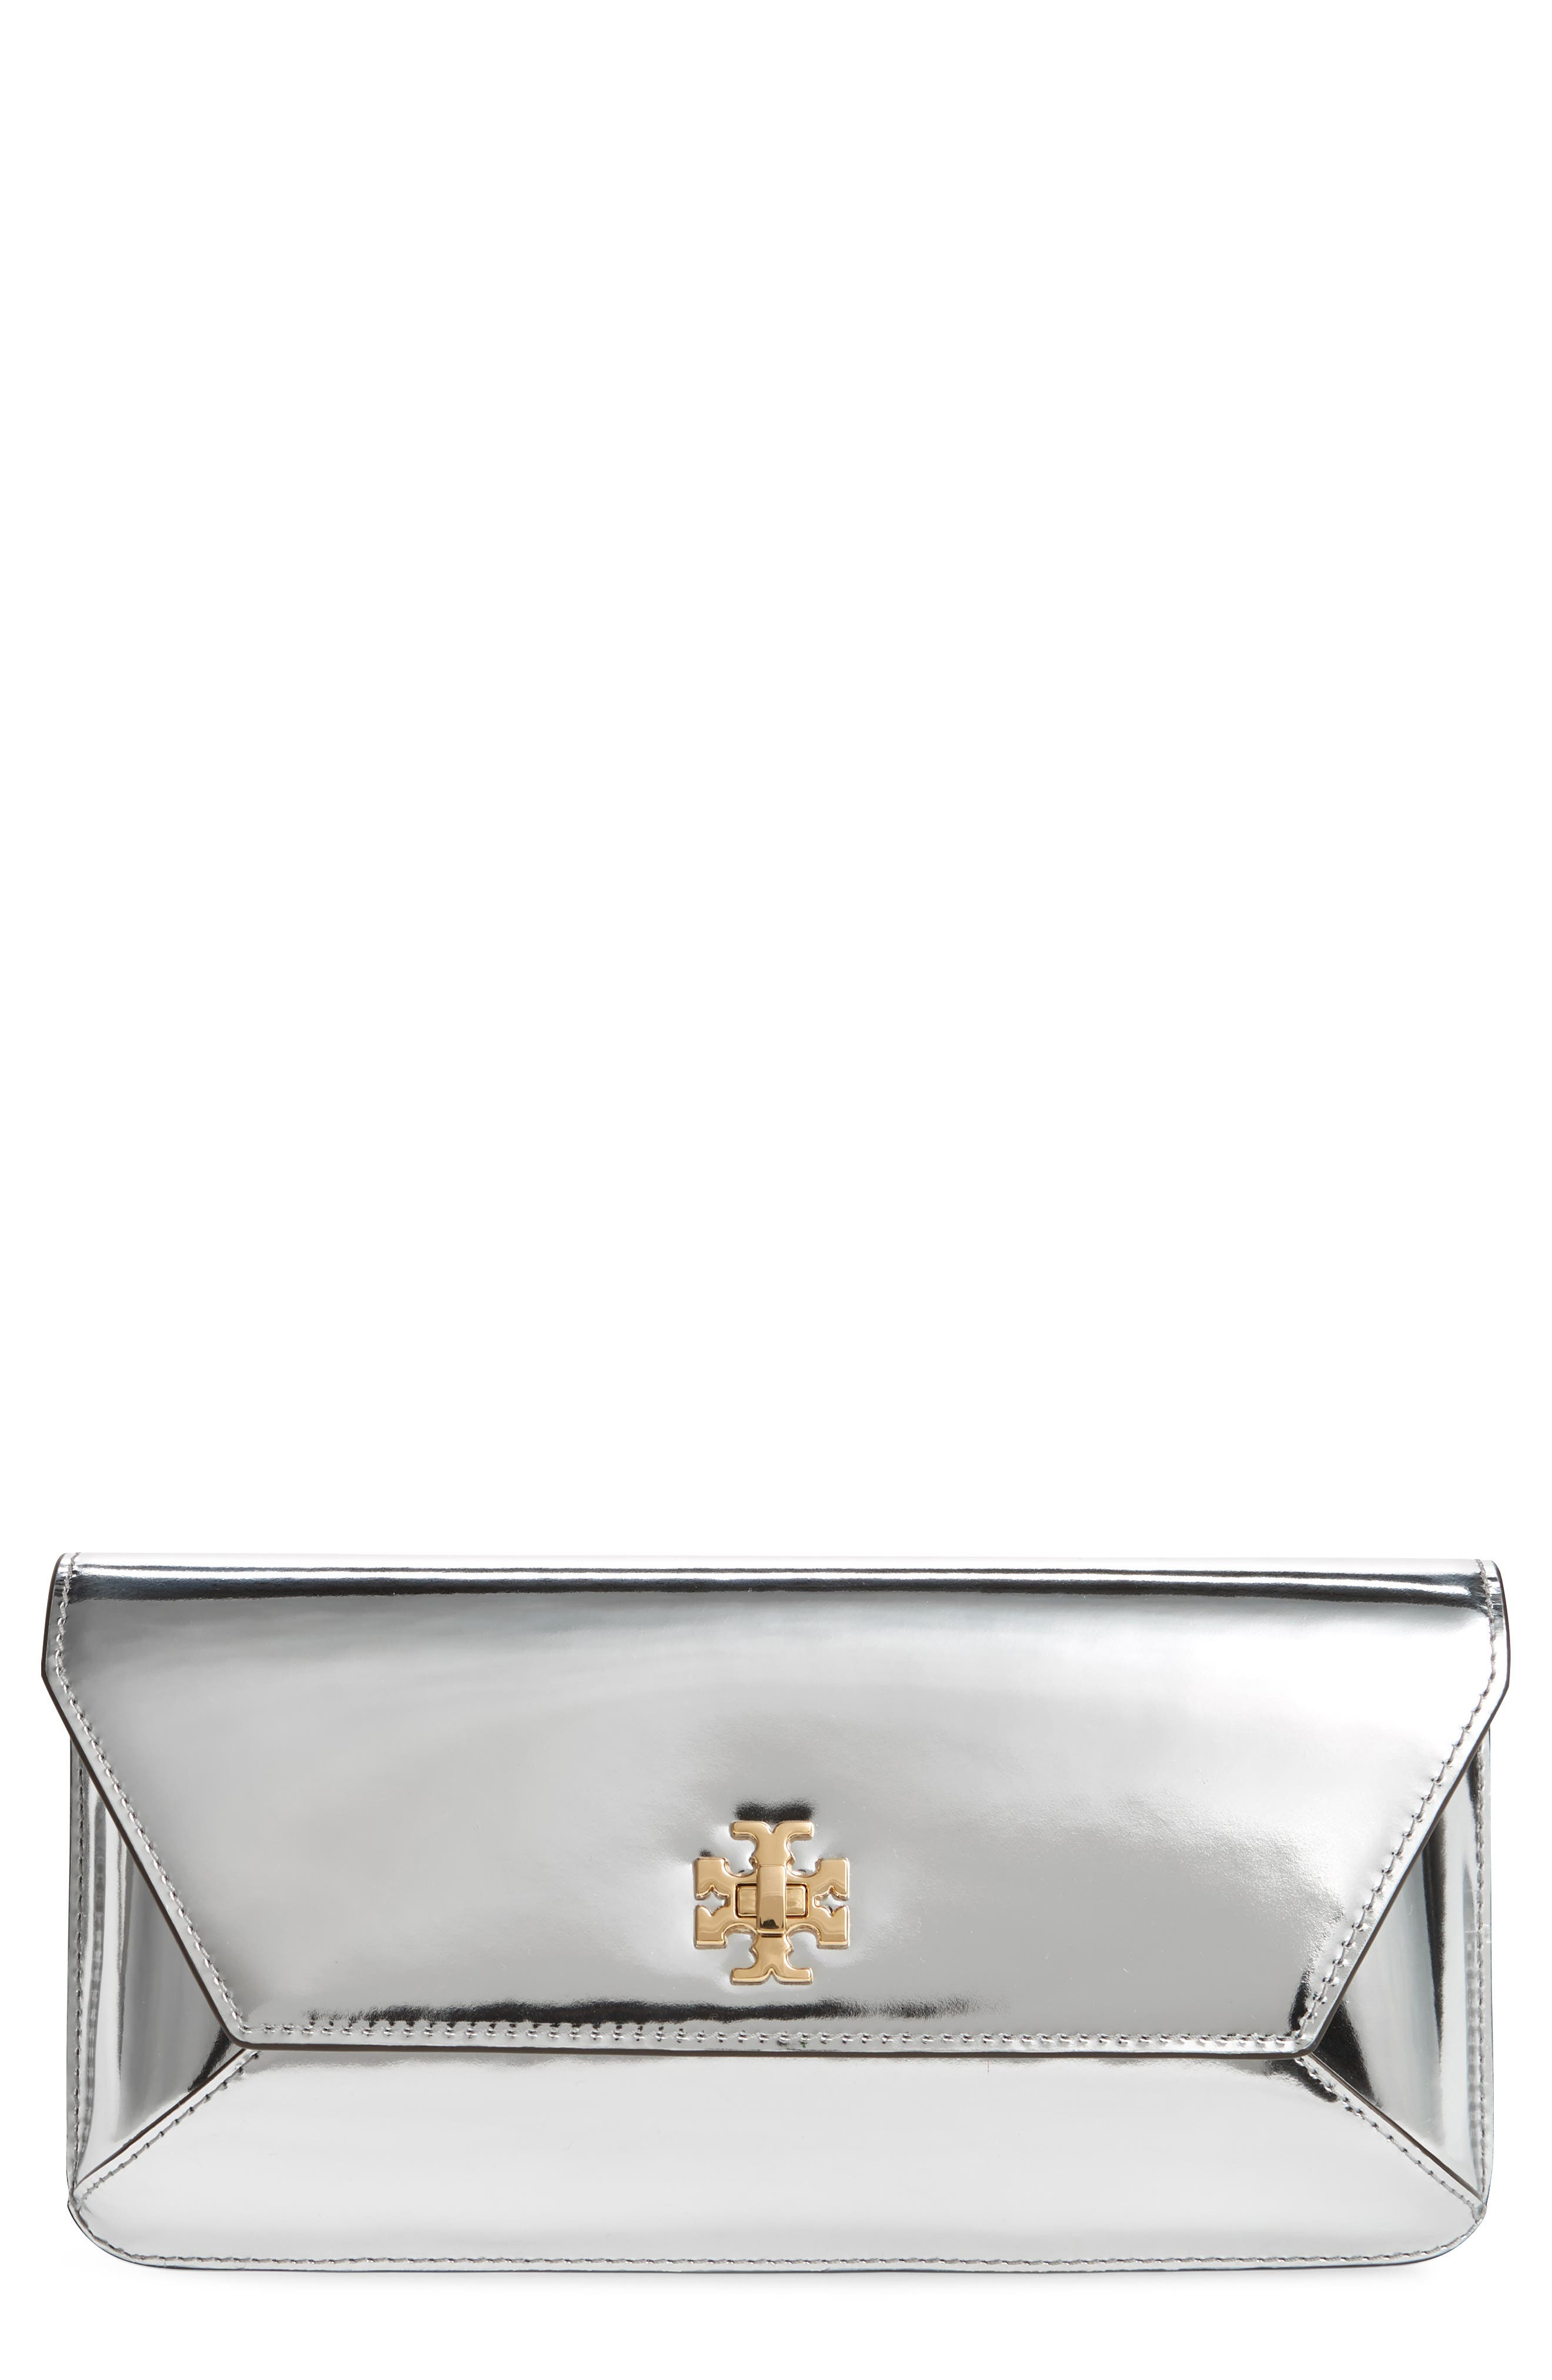 TORY BURCH, Kira Leather Envelope Clutch, Main thumbnail 1, color, MIRROR METALLIC SILVER